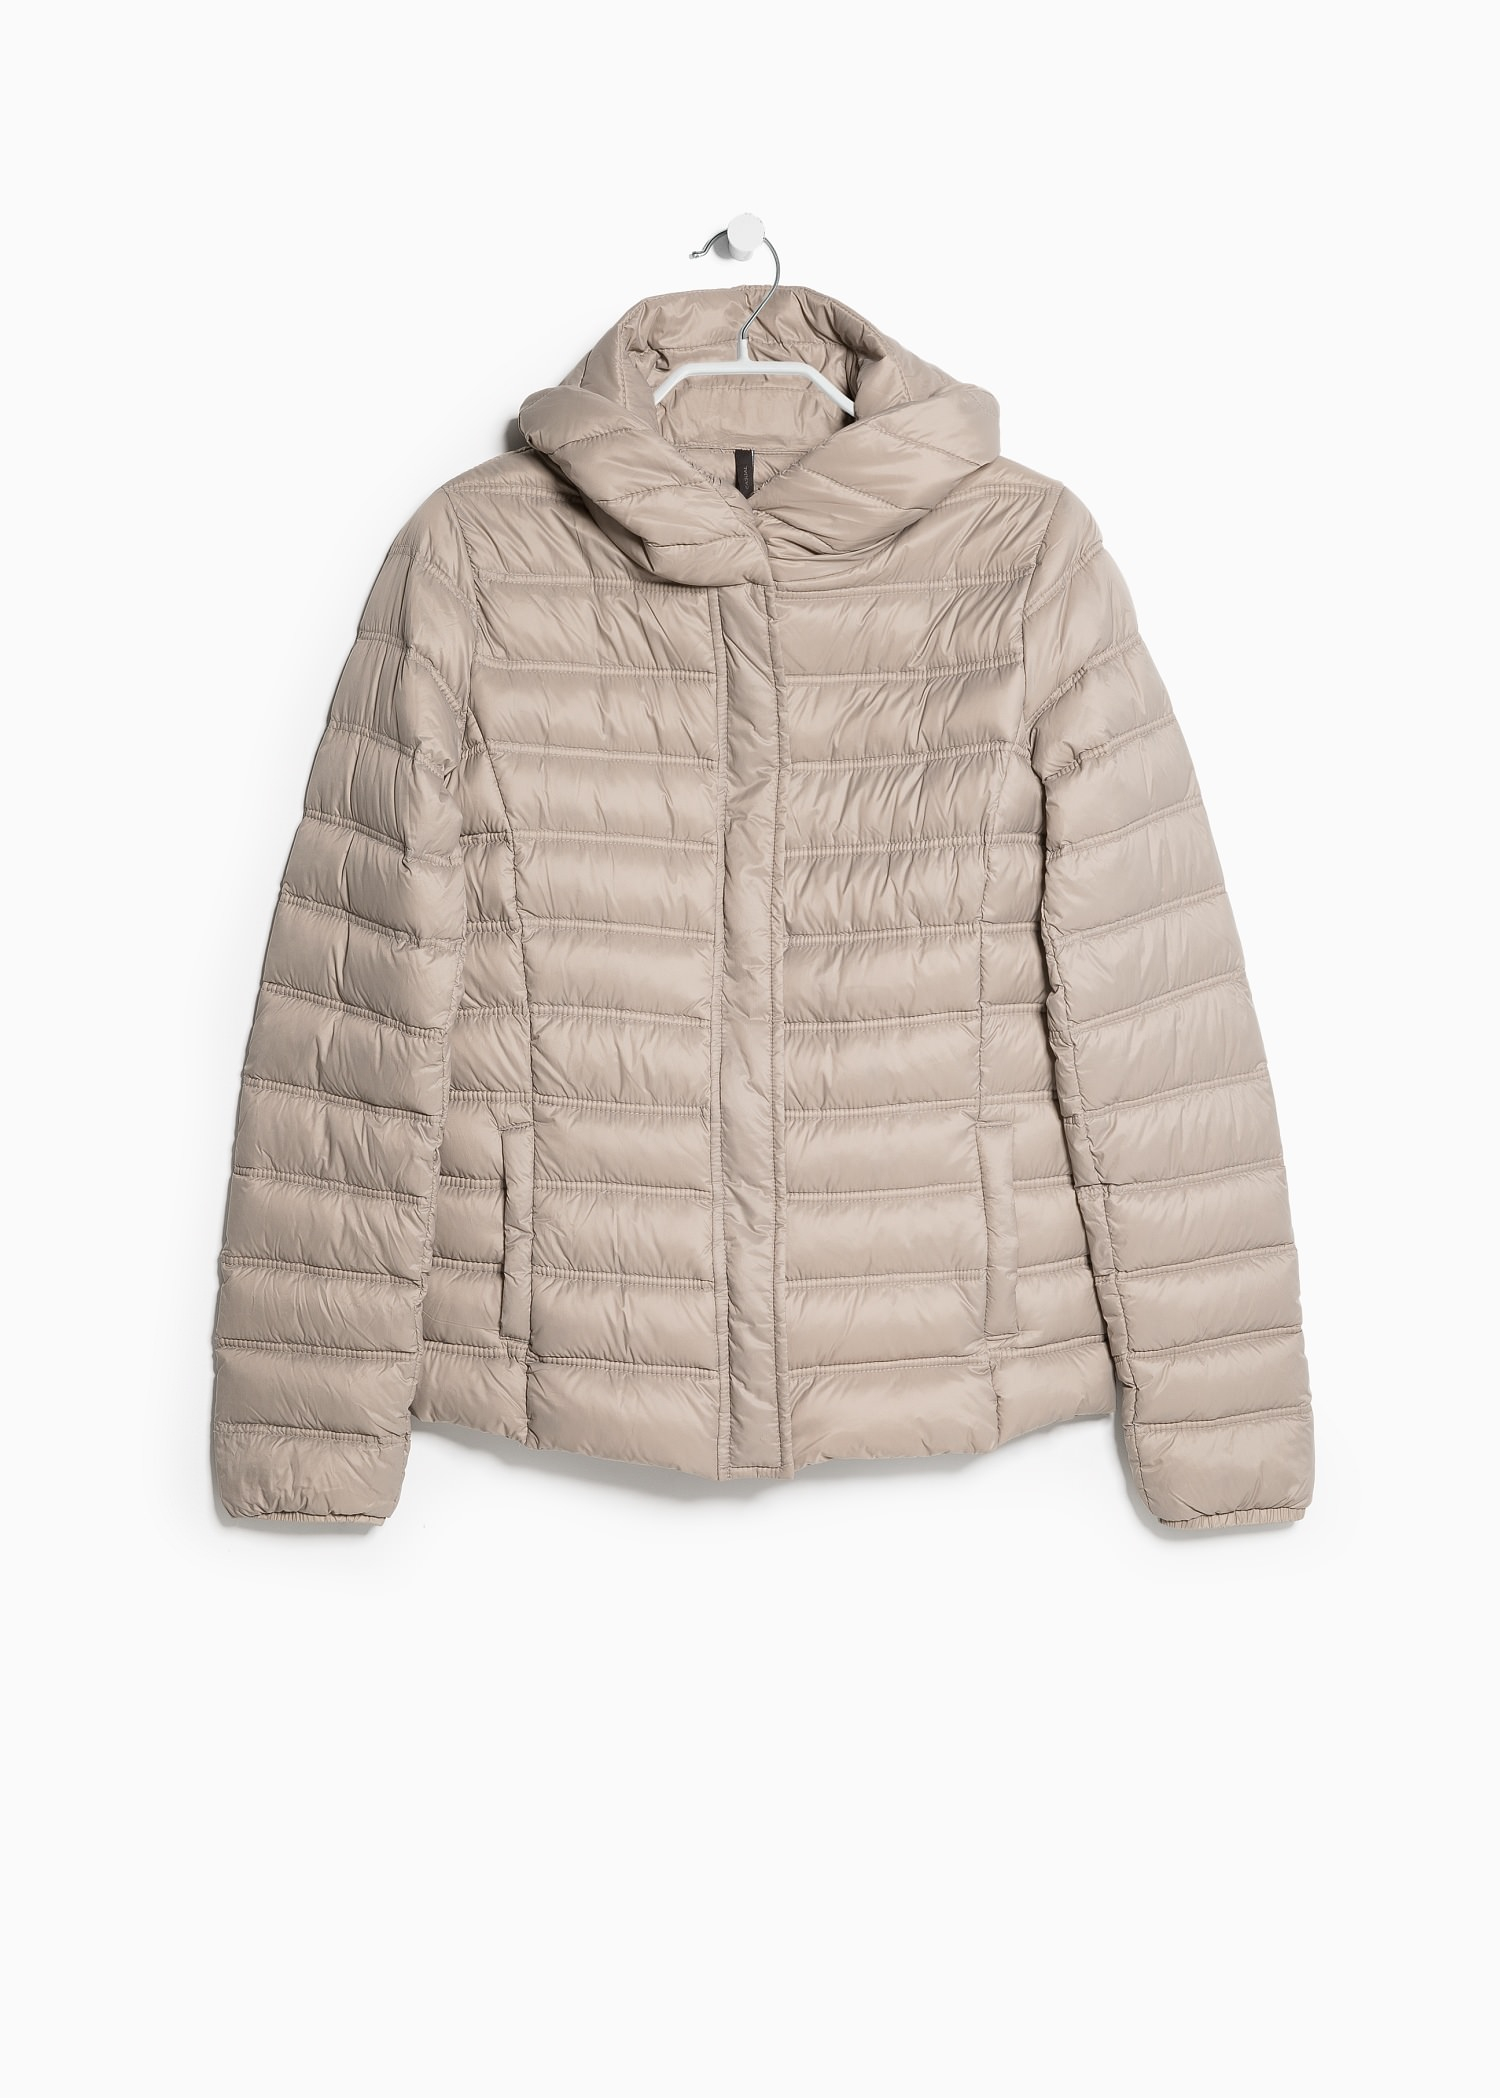 Mango Foldable Feather Down Jacket in Natural | Lyst